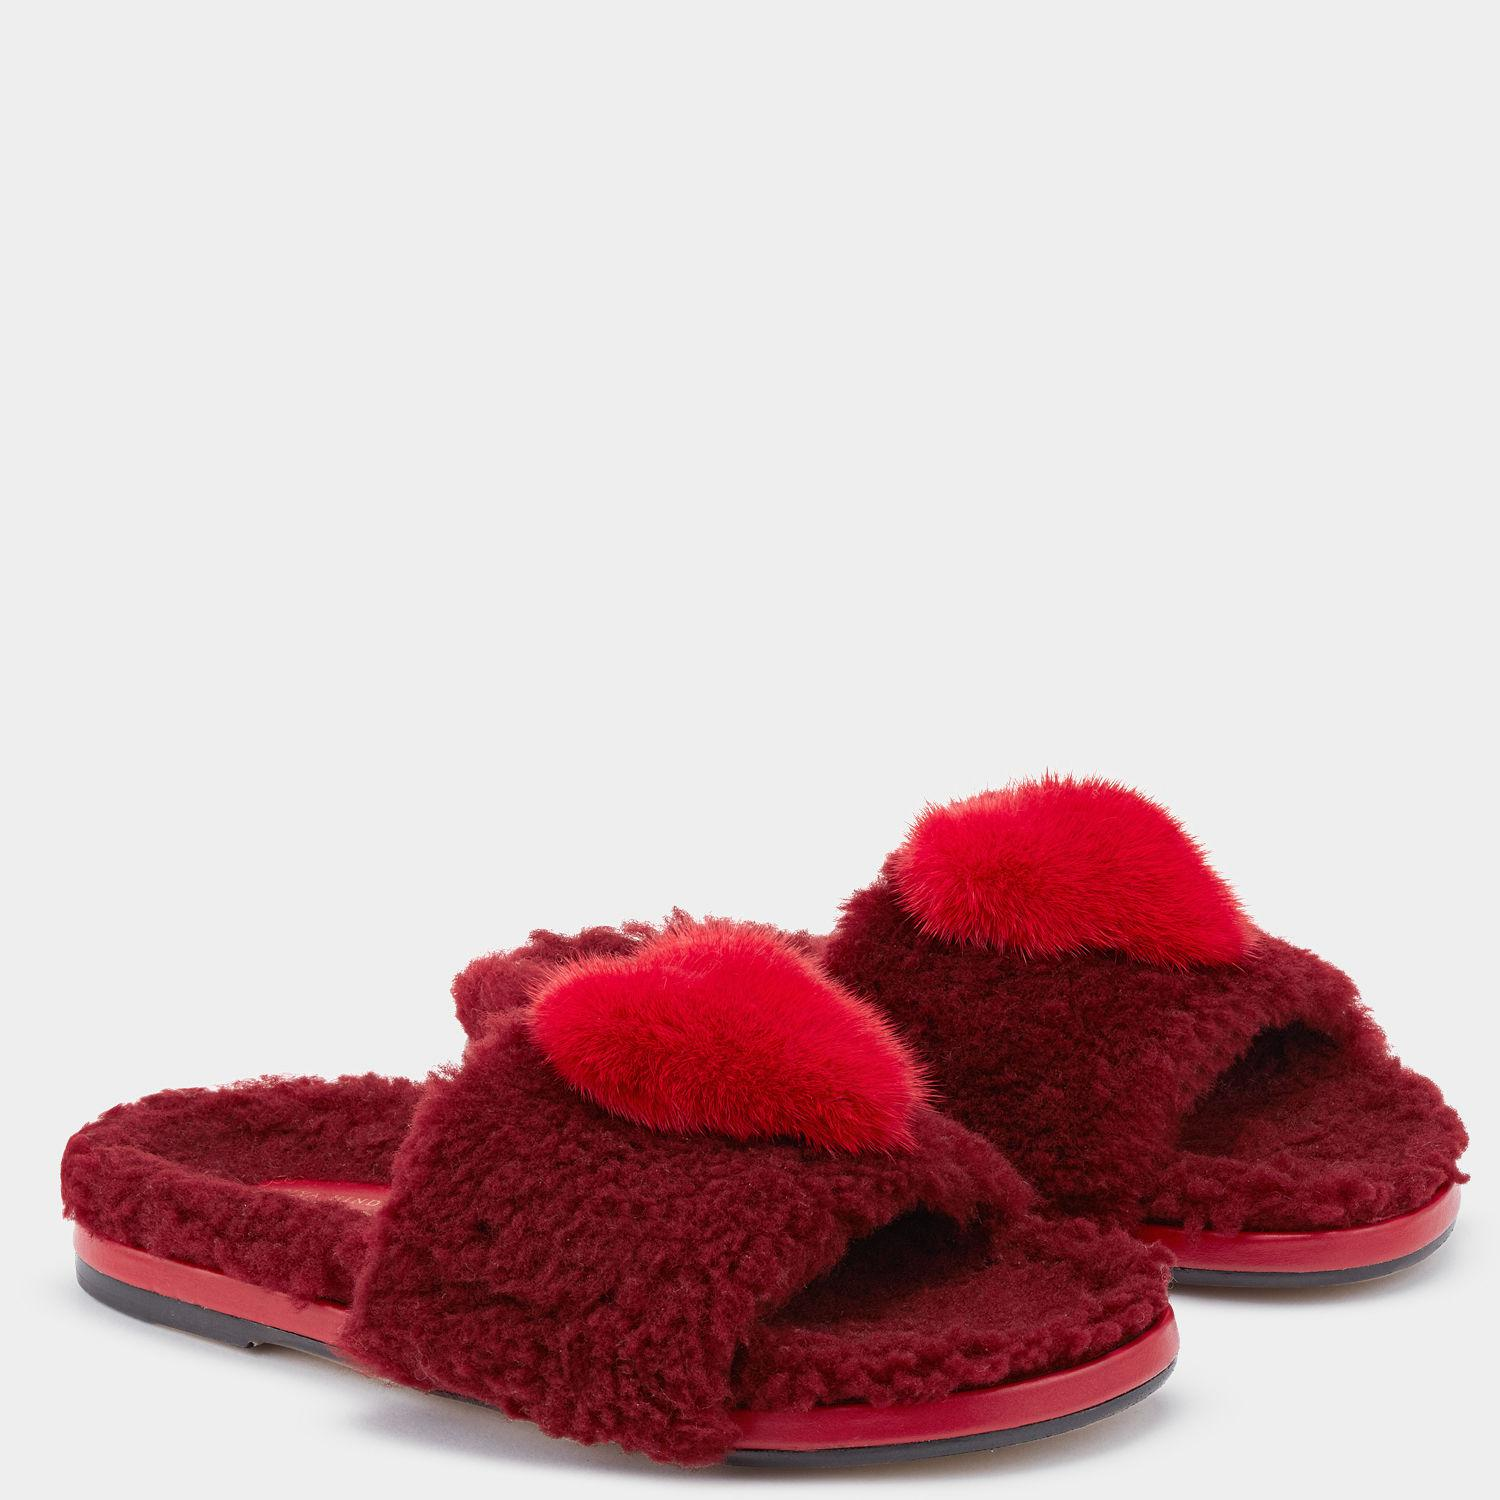 Givenchy Red Chubby Heart Slides RKBmJ7